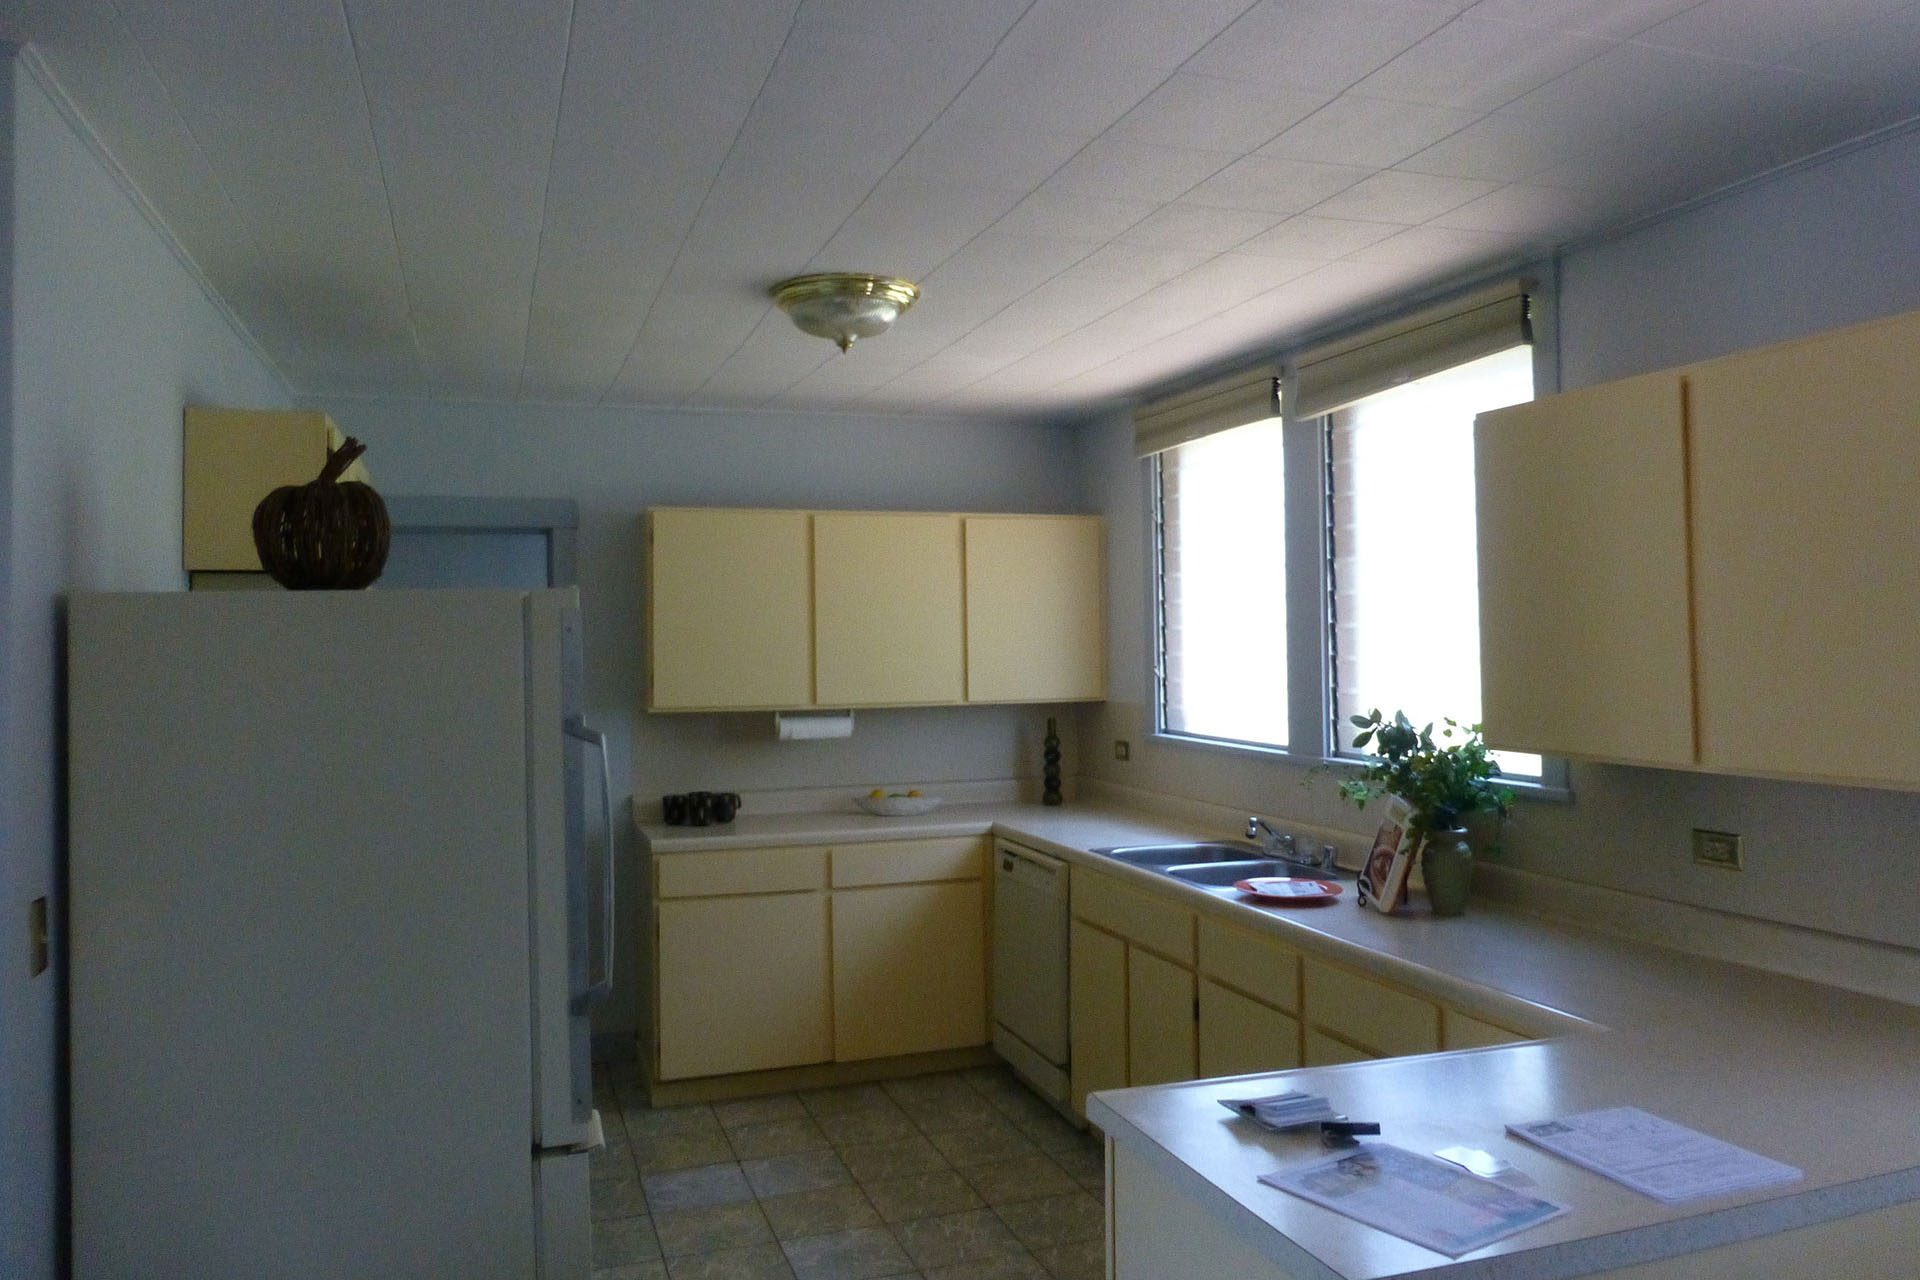 kitchen before full bungalow remodel